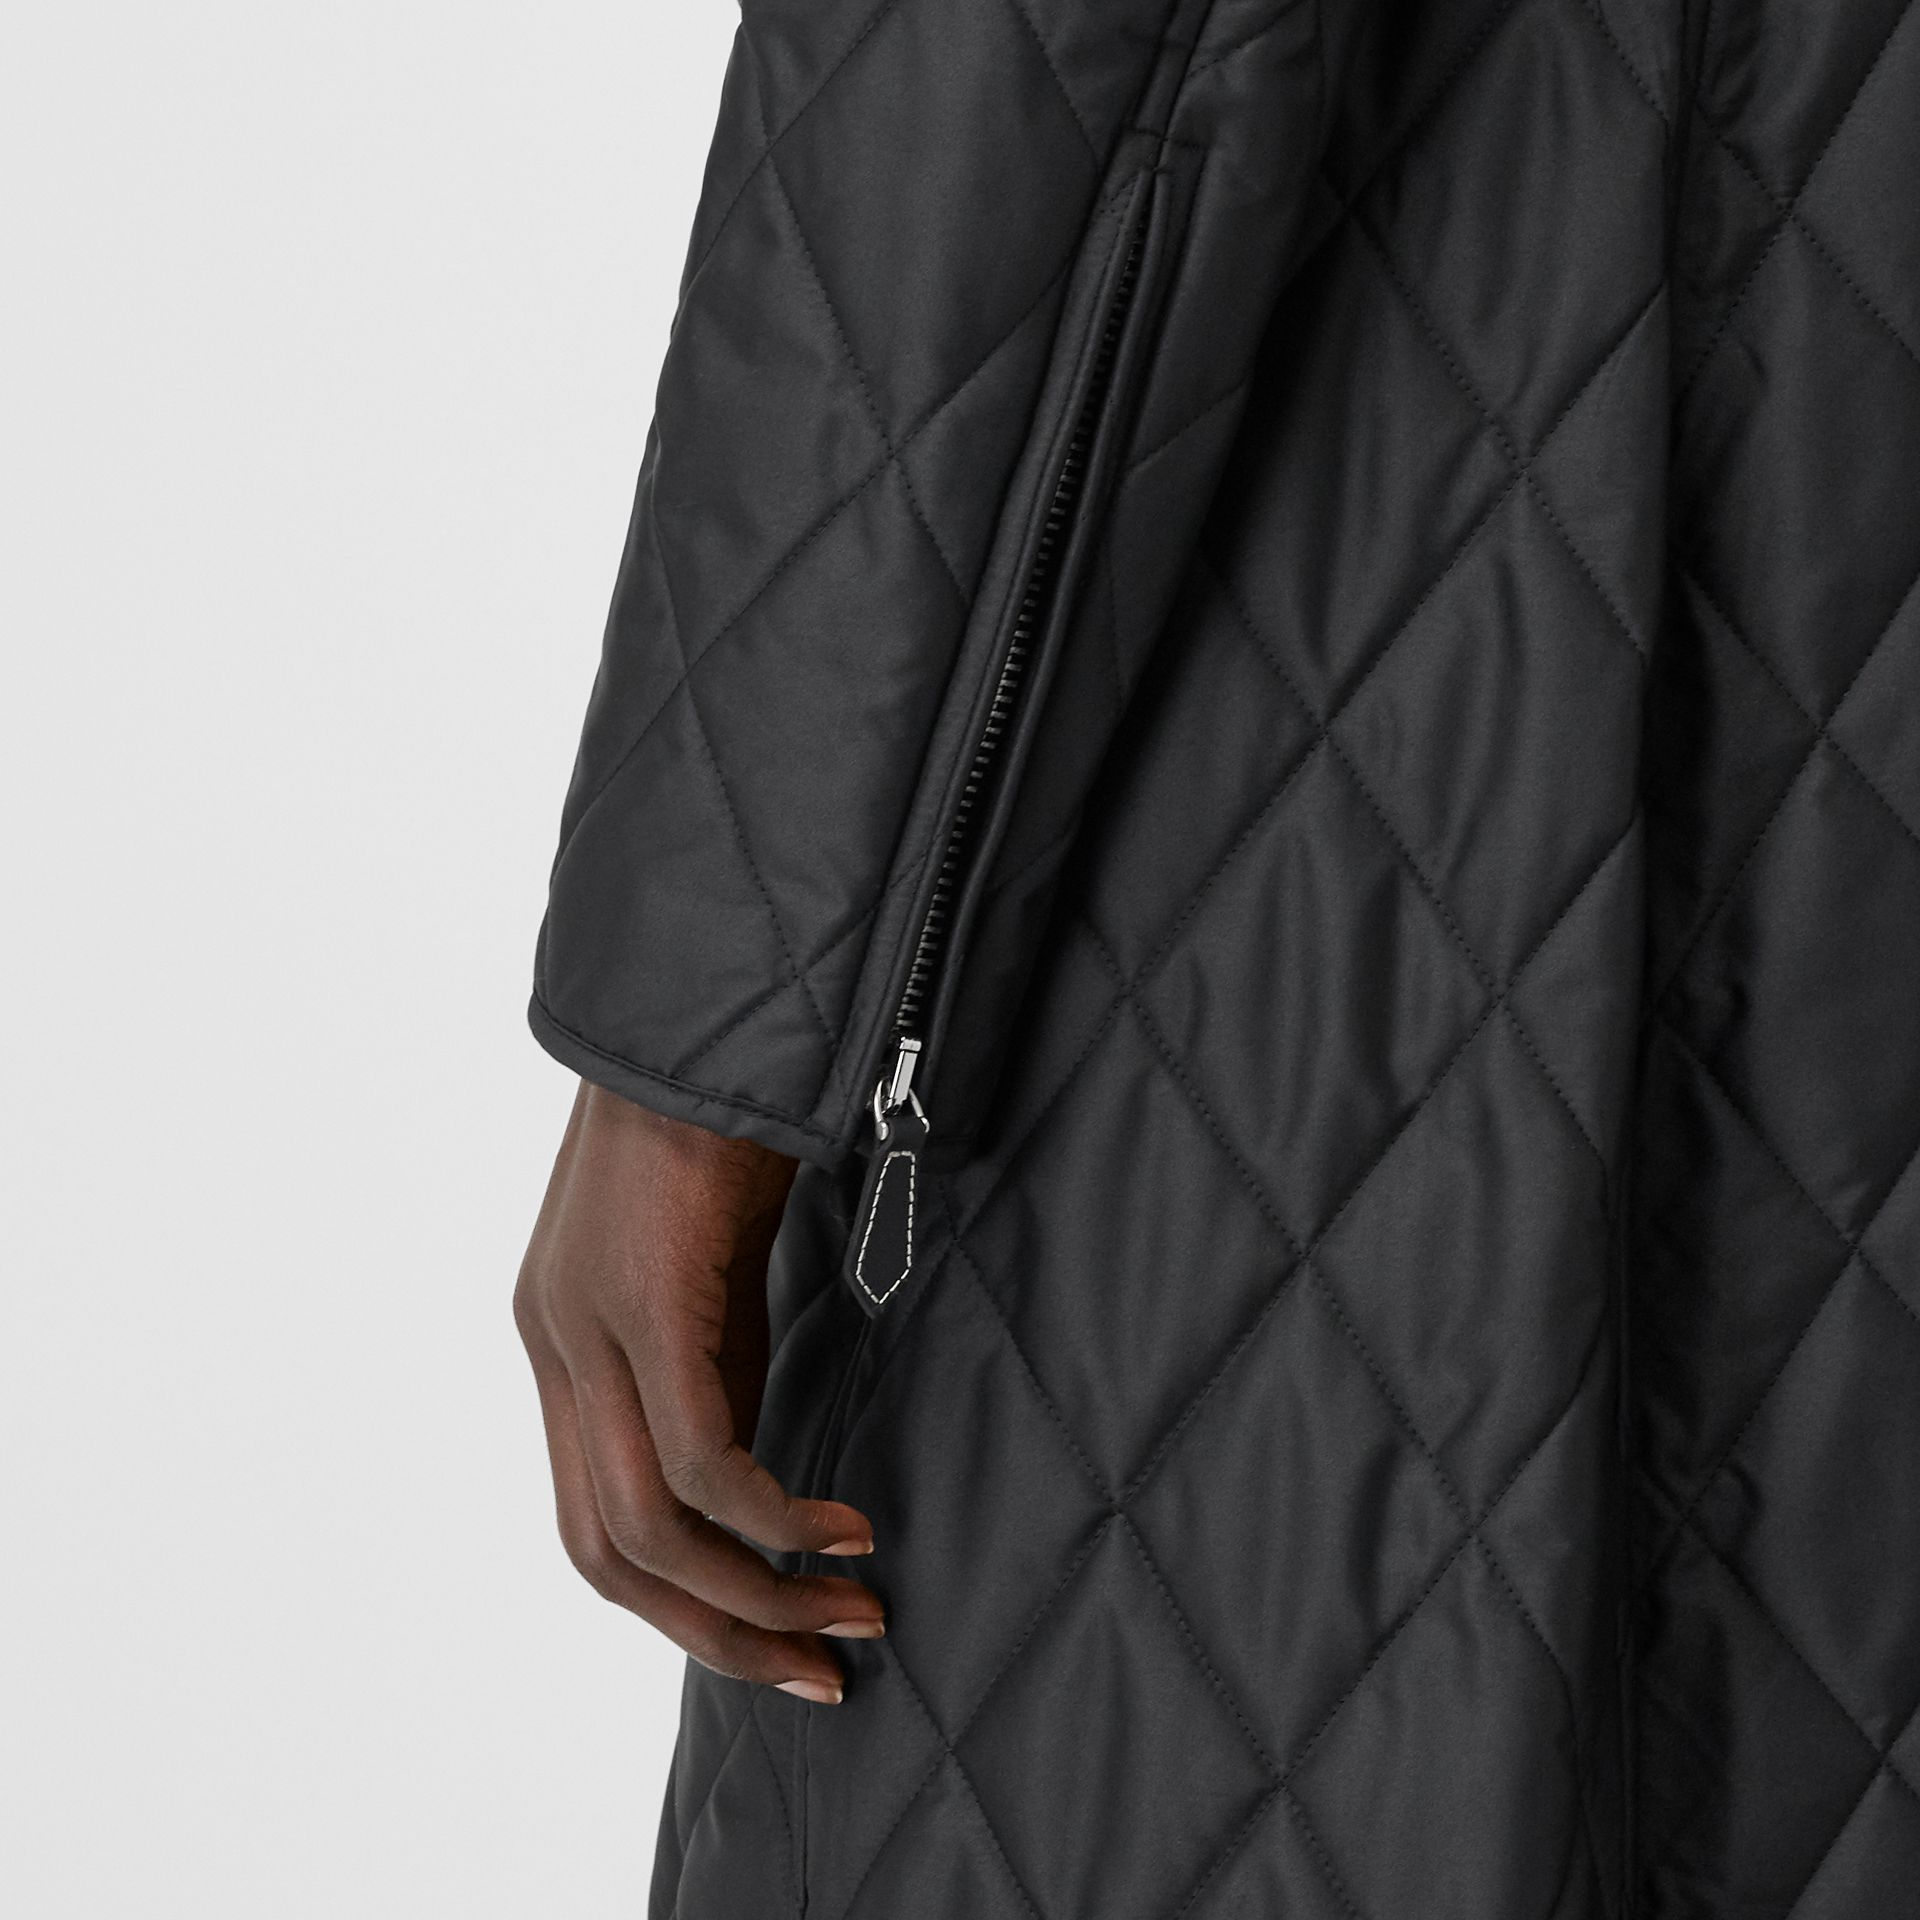 Monogram Motif Quilted Riding Coat in Black - Women | Burberry United Kingdom - gallery image 6